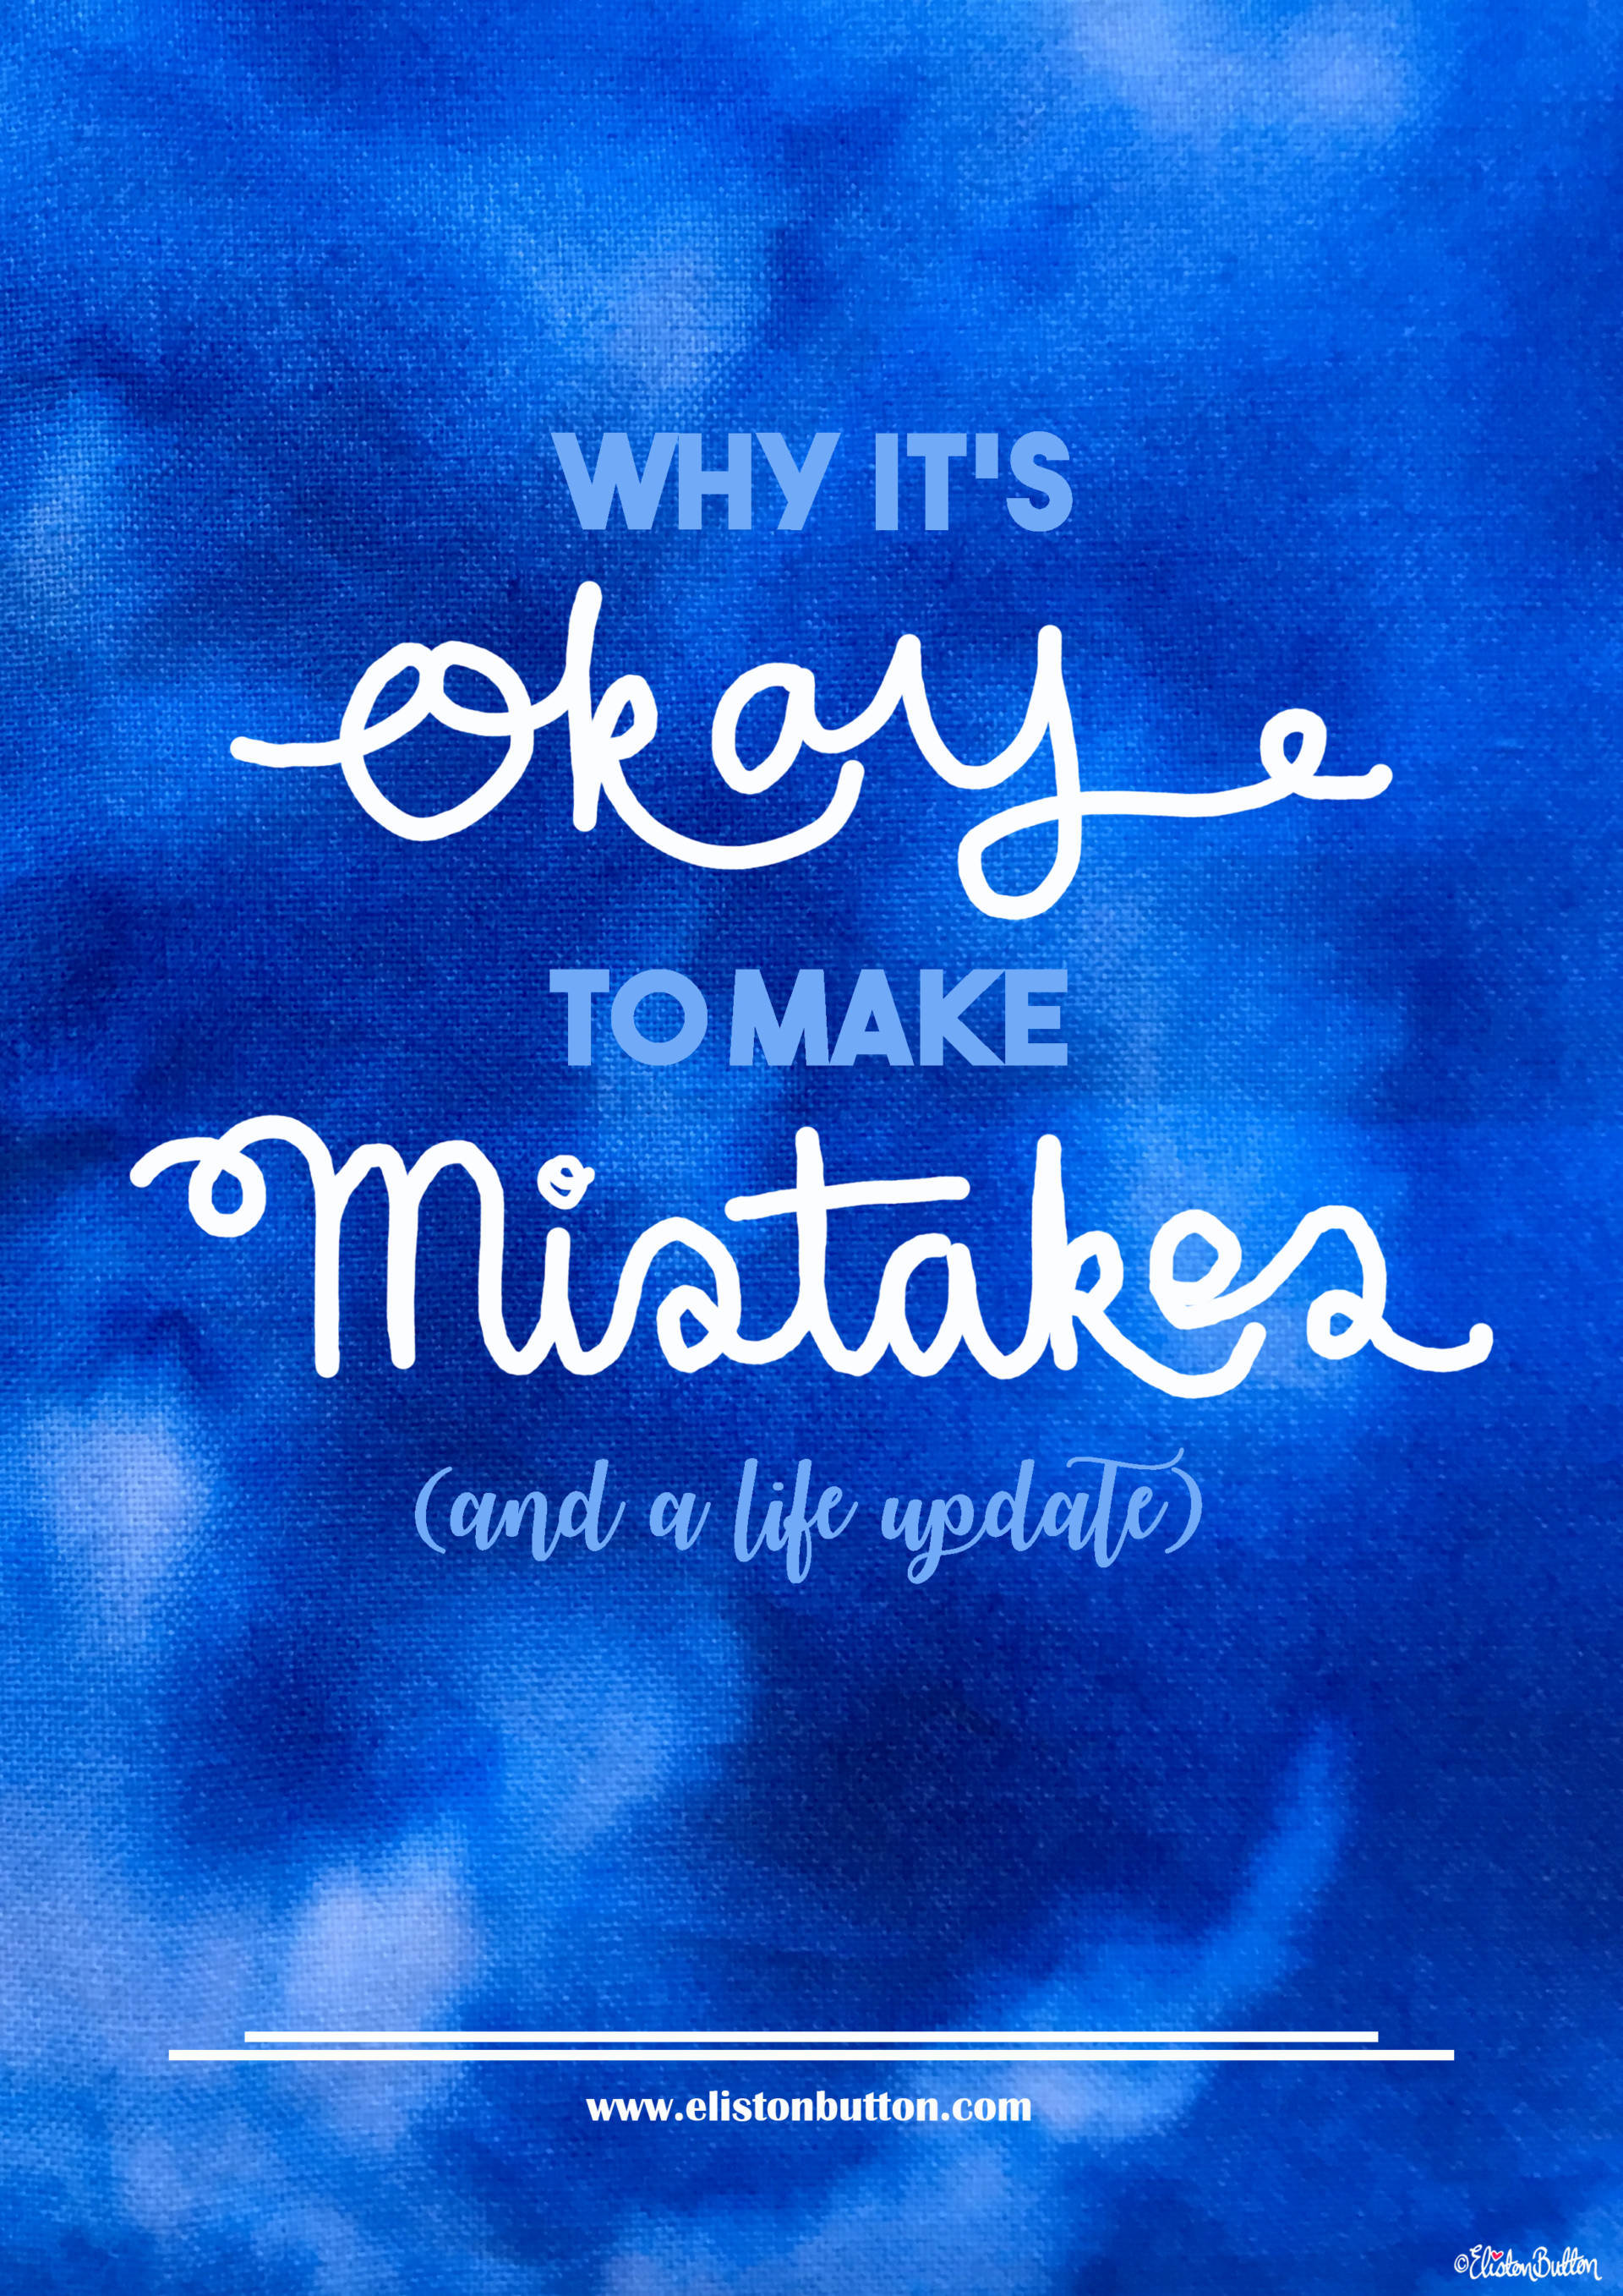 Why It's Okay To Make Mistakes (and a Life Update) Title Banner - Why It's Okay To Make Mistakes (and a Life Update) at www.elistonbutton.com - Eliston Button - That Crafty Kid – Art, Design, Craft & Adventure.